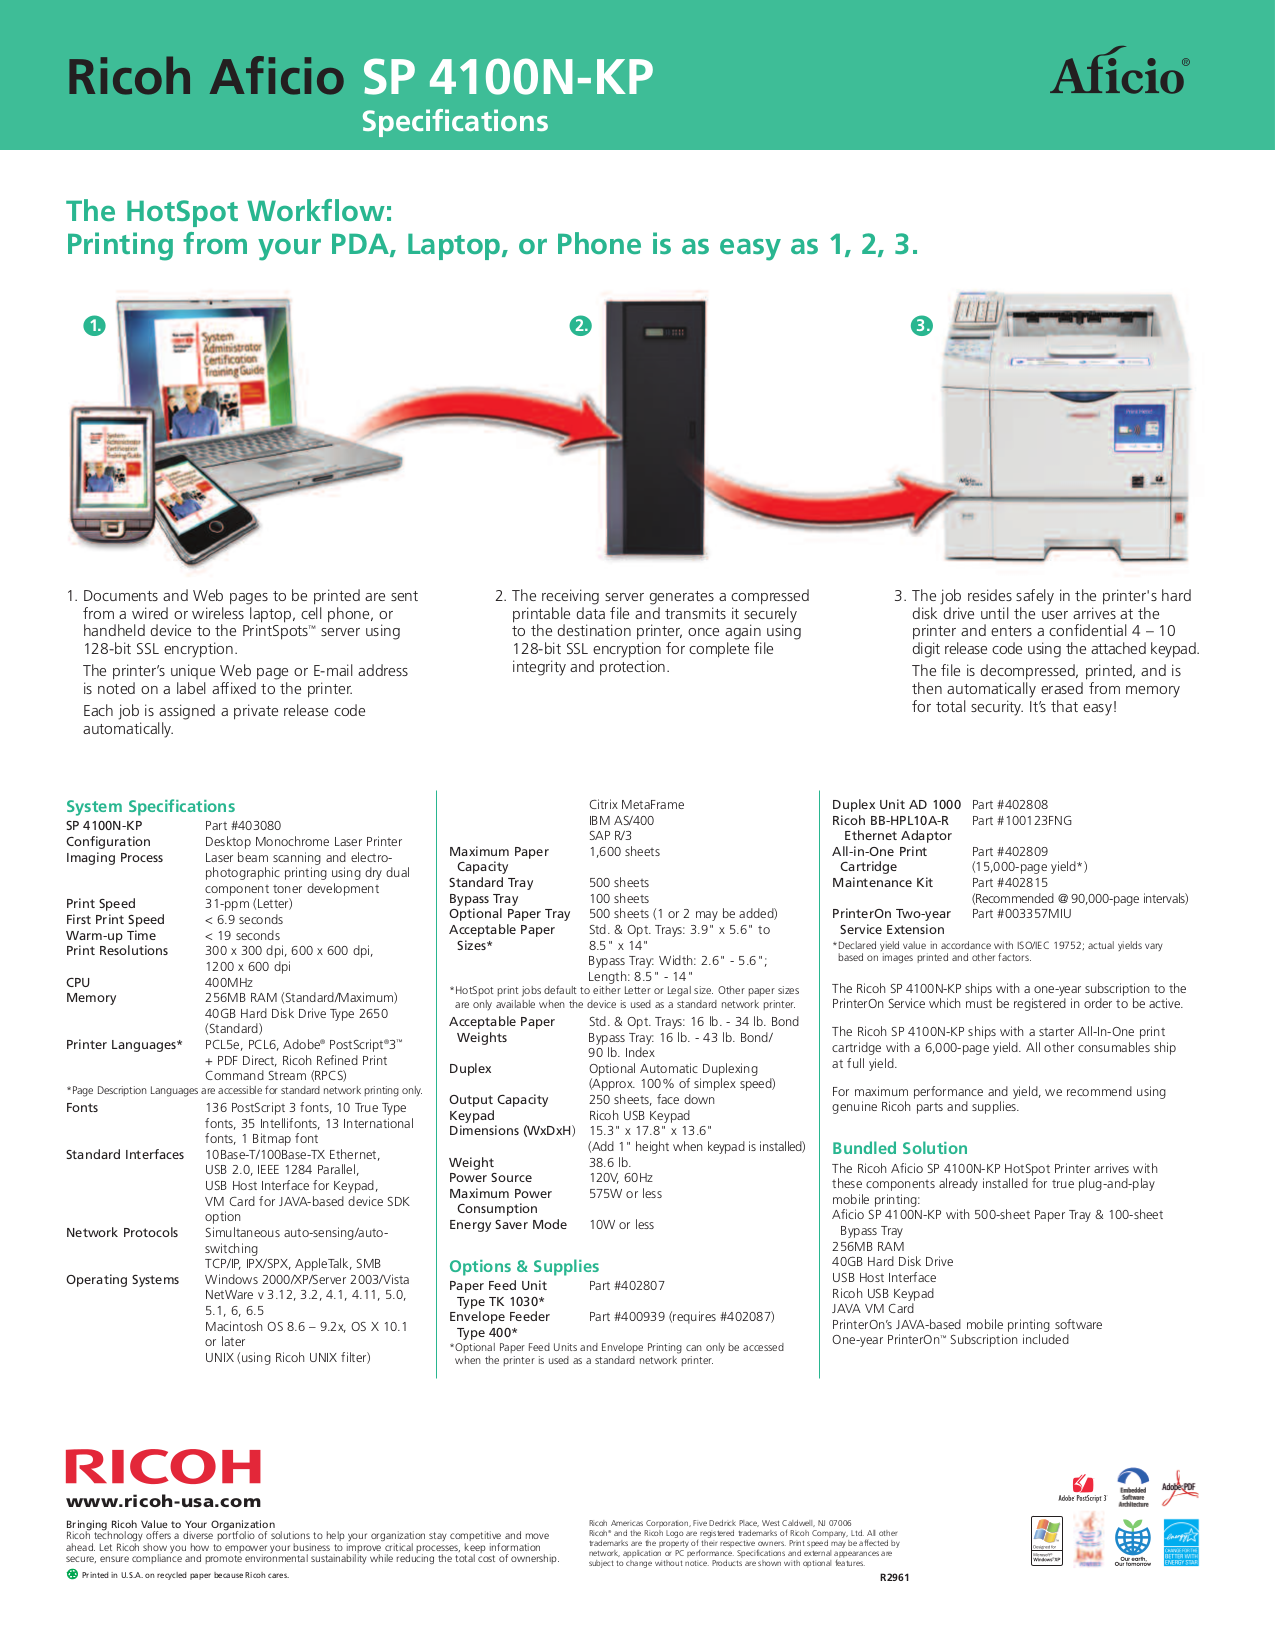 PDF manual for Ricoh Printer Aficio SP 4100N